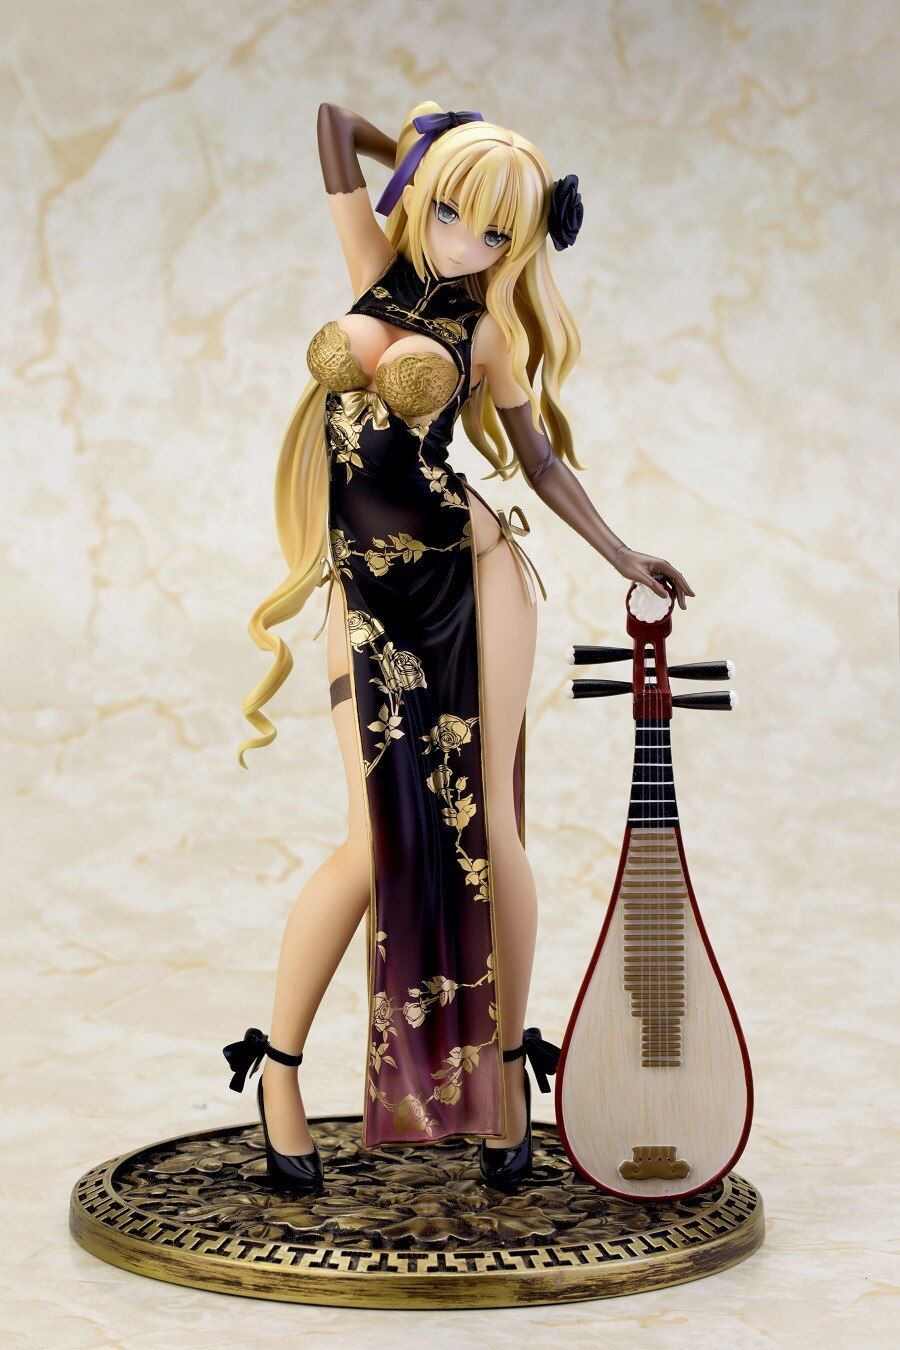 Anime Sexy Girls Ping Yi Cheongsam 1/6 Scale figure fantasy Cast Off PVC Action Figure girl doll Gift 24cm